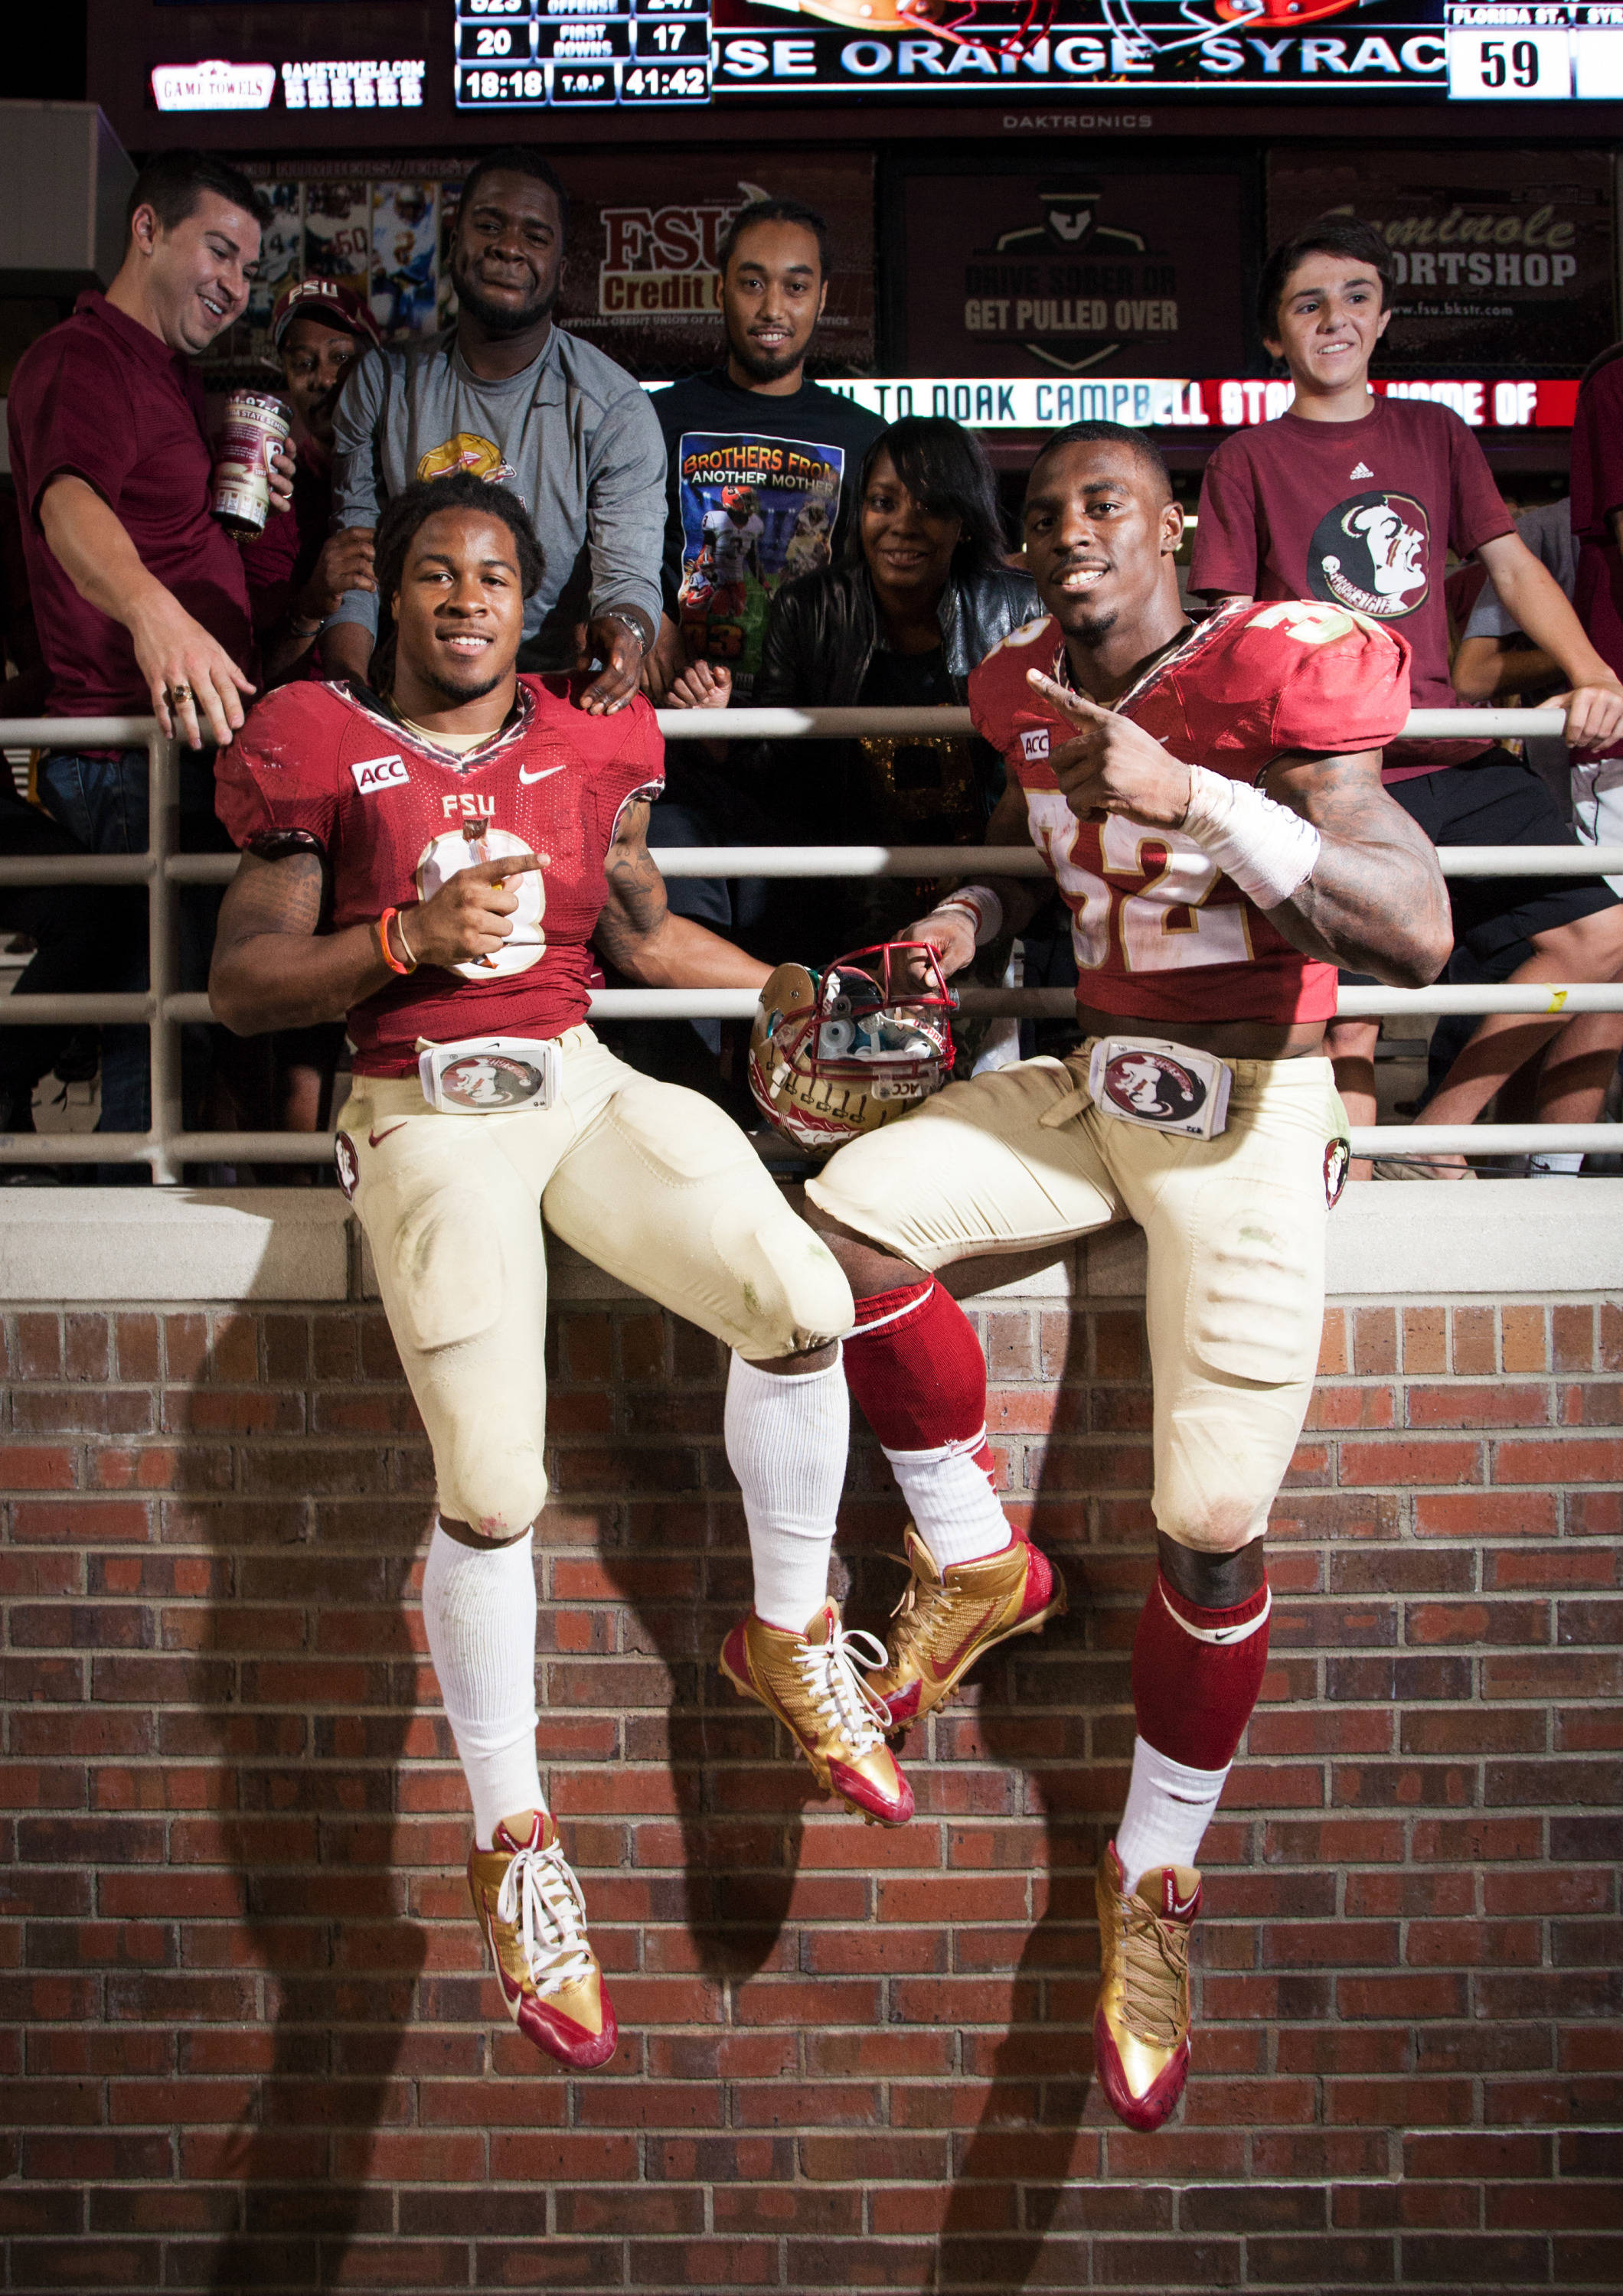 Devonta Freeman (8) and James Wilder, Jr. (32) pose after FSU Football's 59-3 win over Syracuse on Saturday, November 16, 2013 in Tallahassee, Fla. Photo by Mike Schwarz.